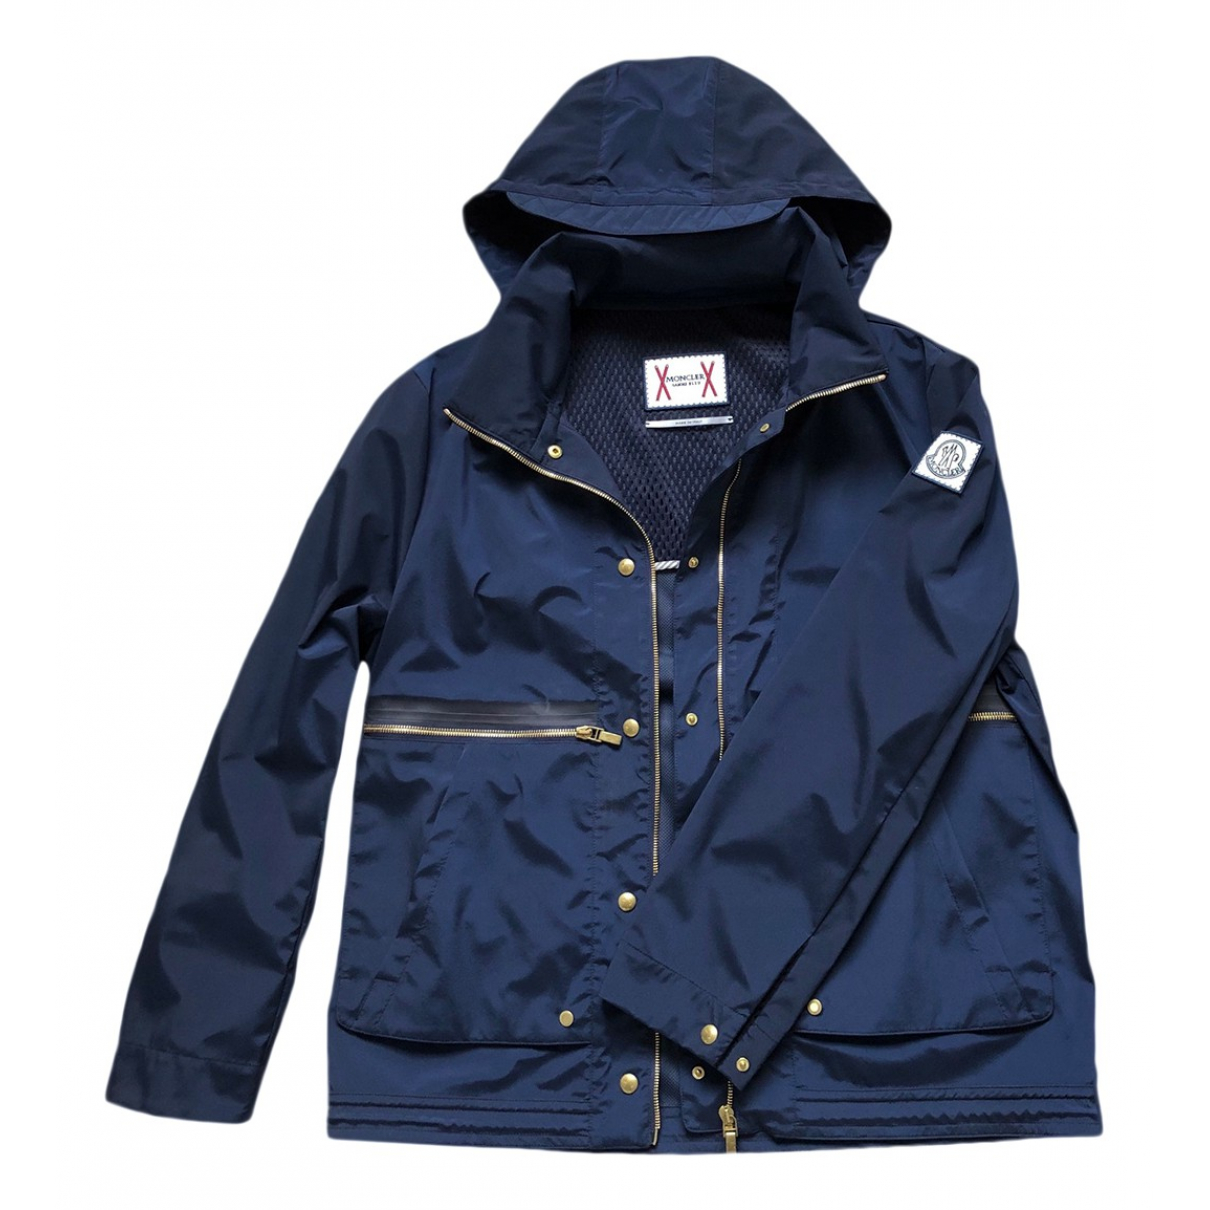 Moncler \N Jacke in  Marine Polyester